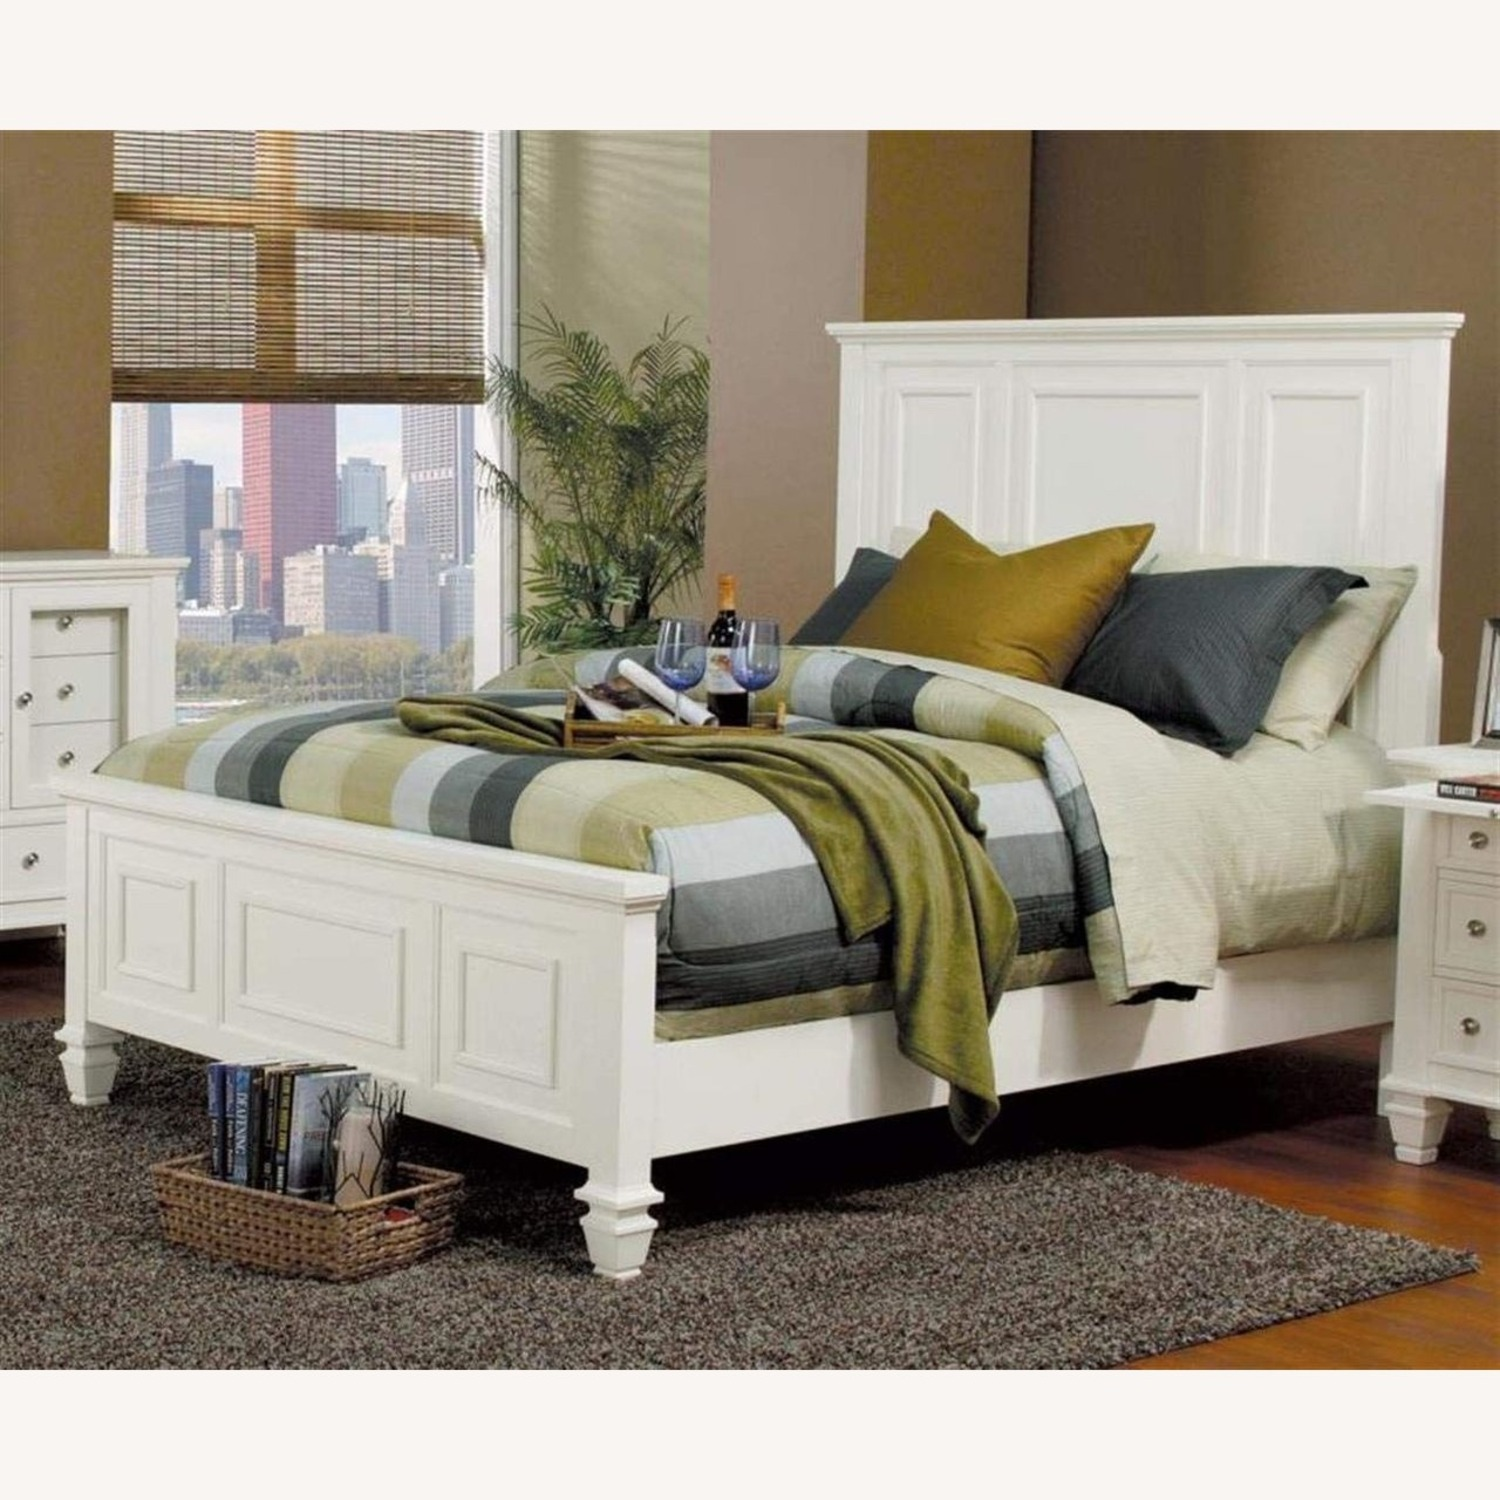 Cottage-Style Queen Bed In White Finish - image-1